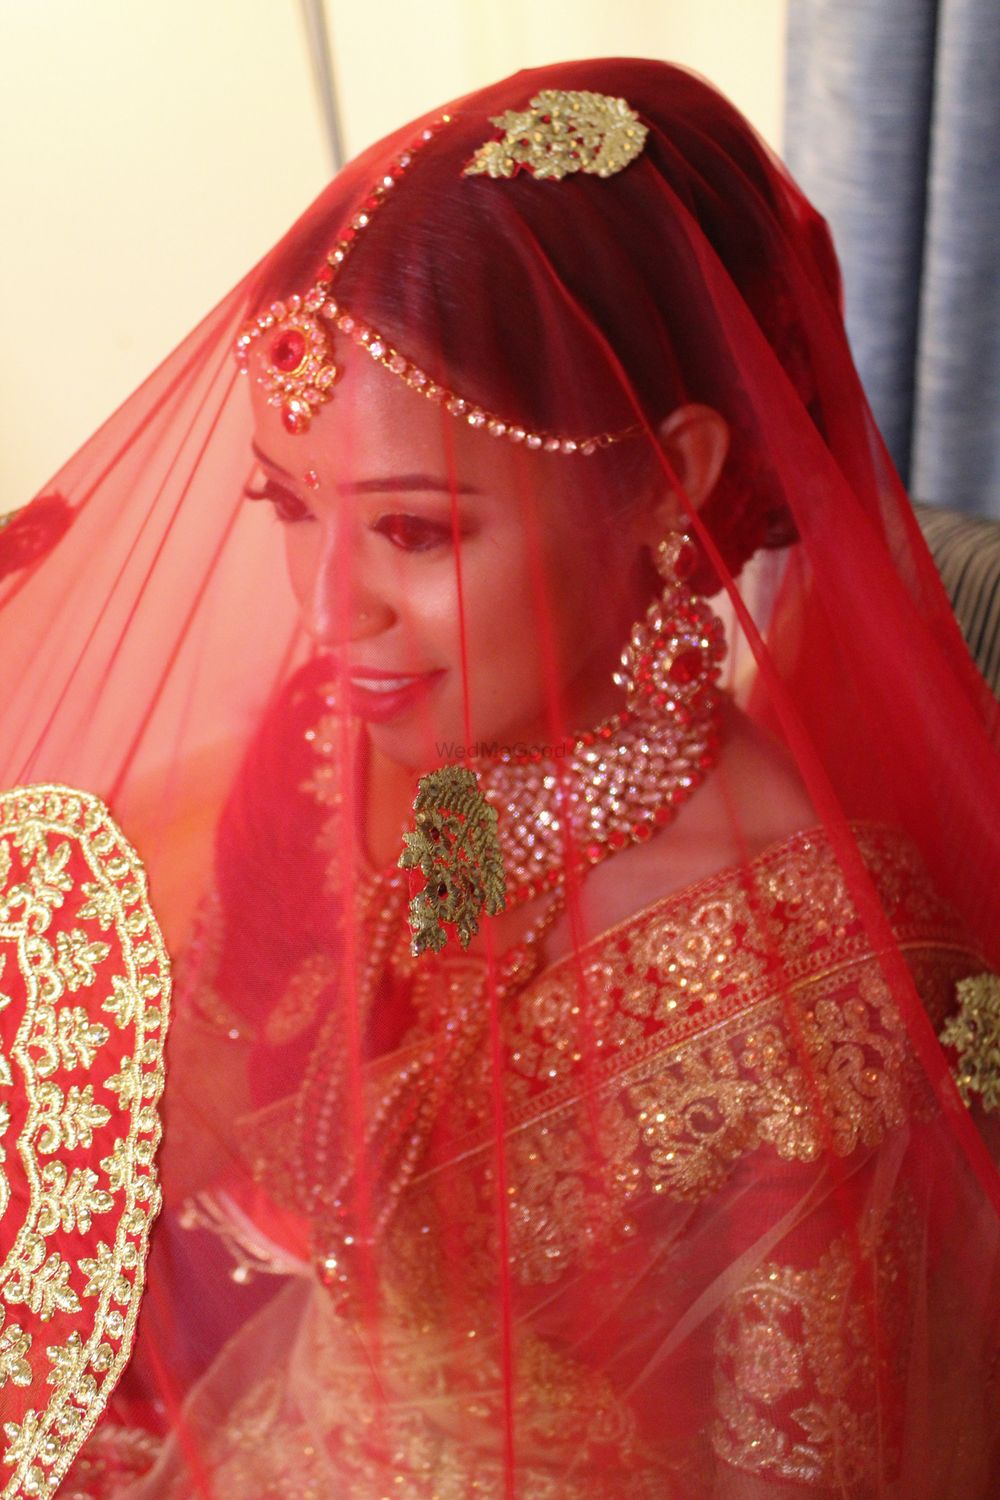 Photo From Trishna's Wedding - By Aakriti Gandhi Makeup Artist